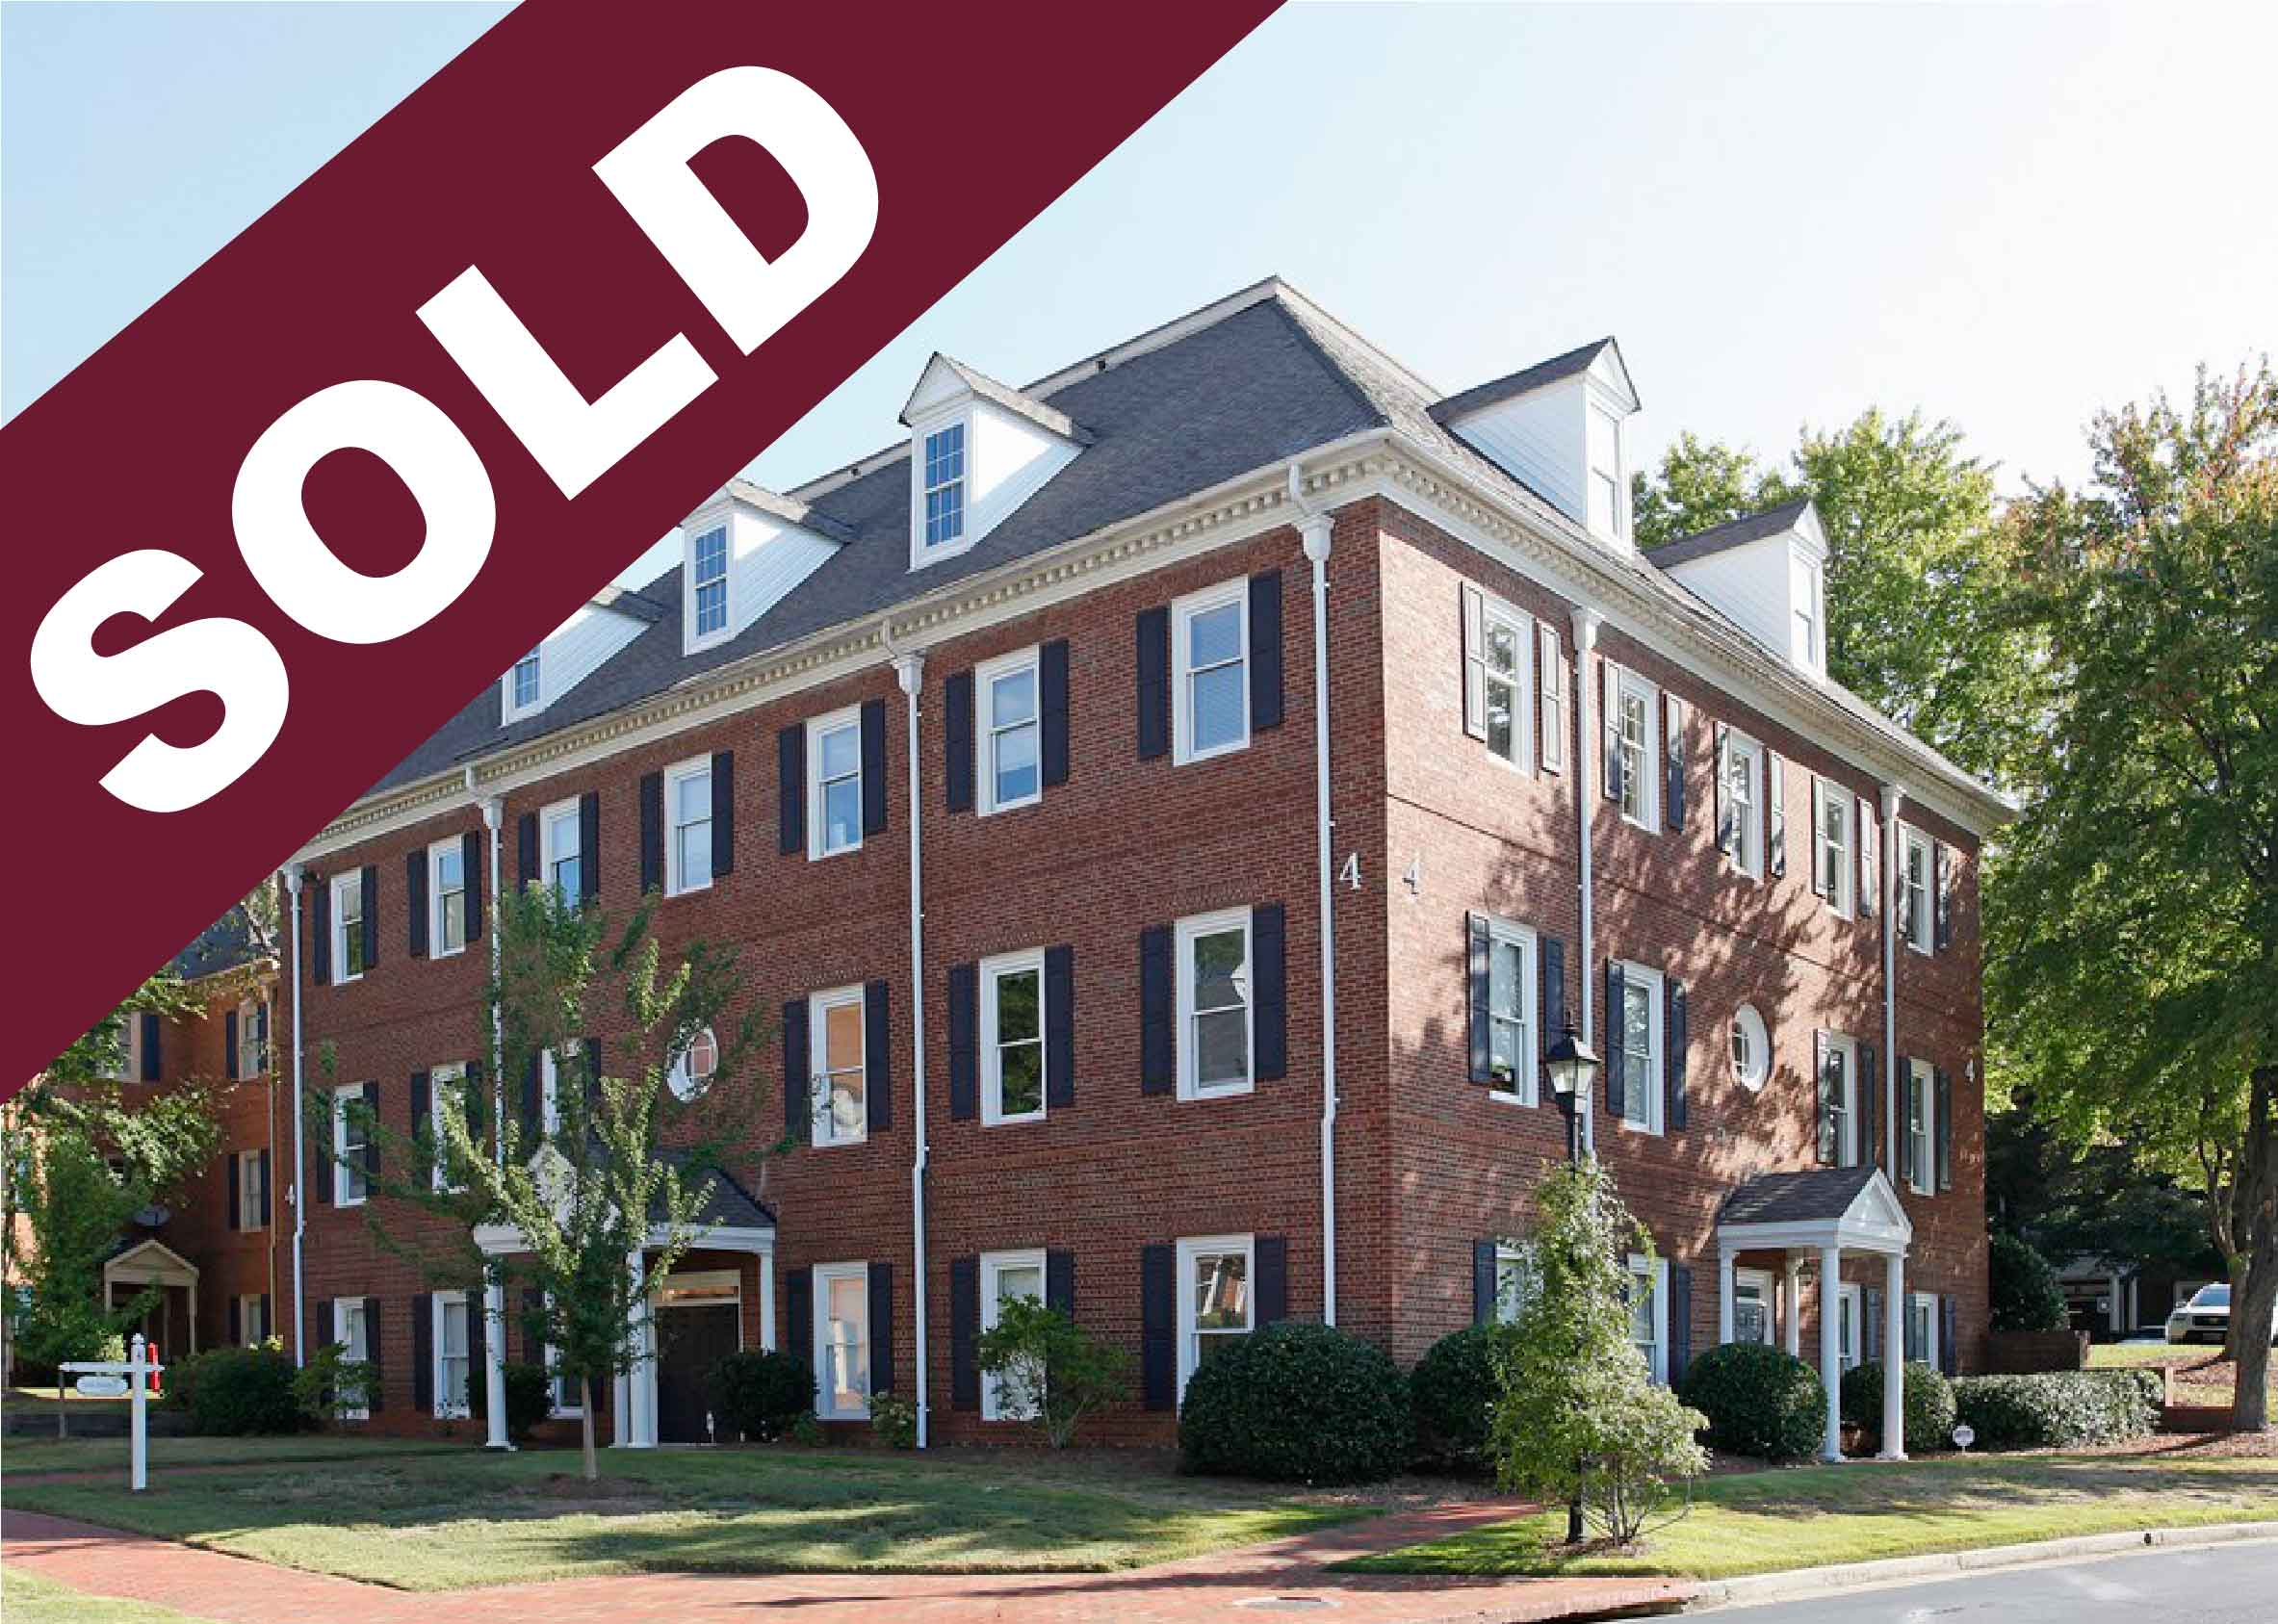 SOLD: 1640 Powers Ferry Road Building Four